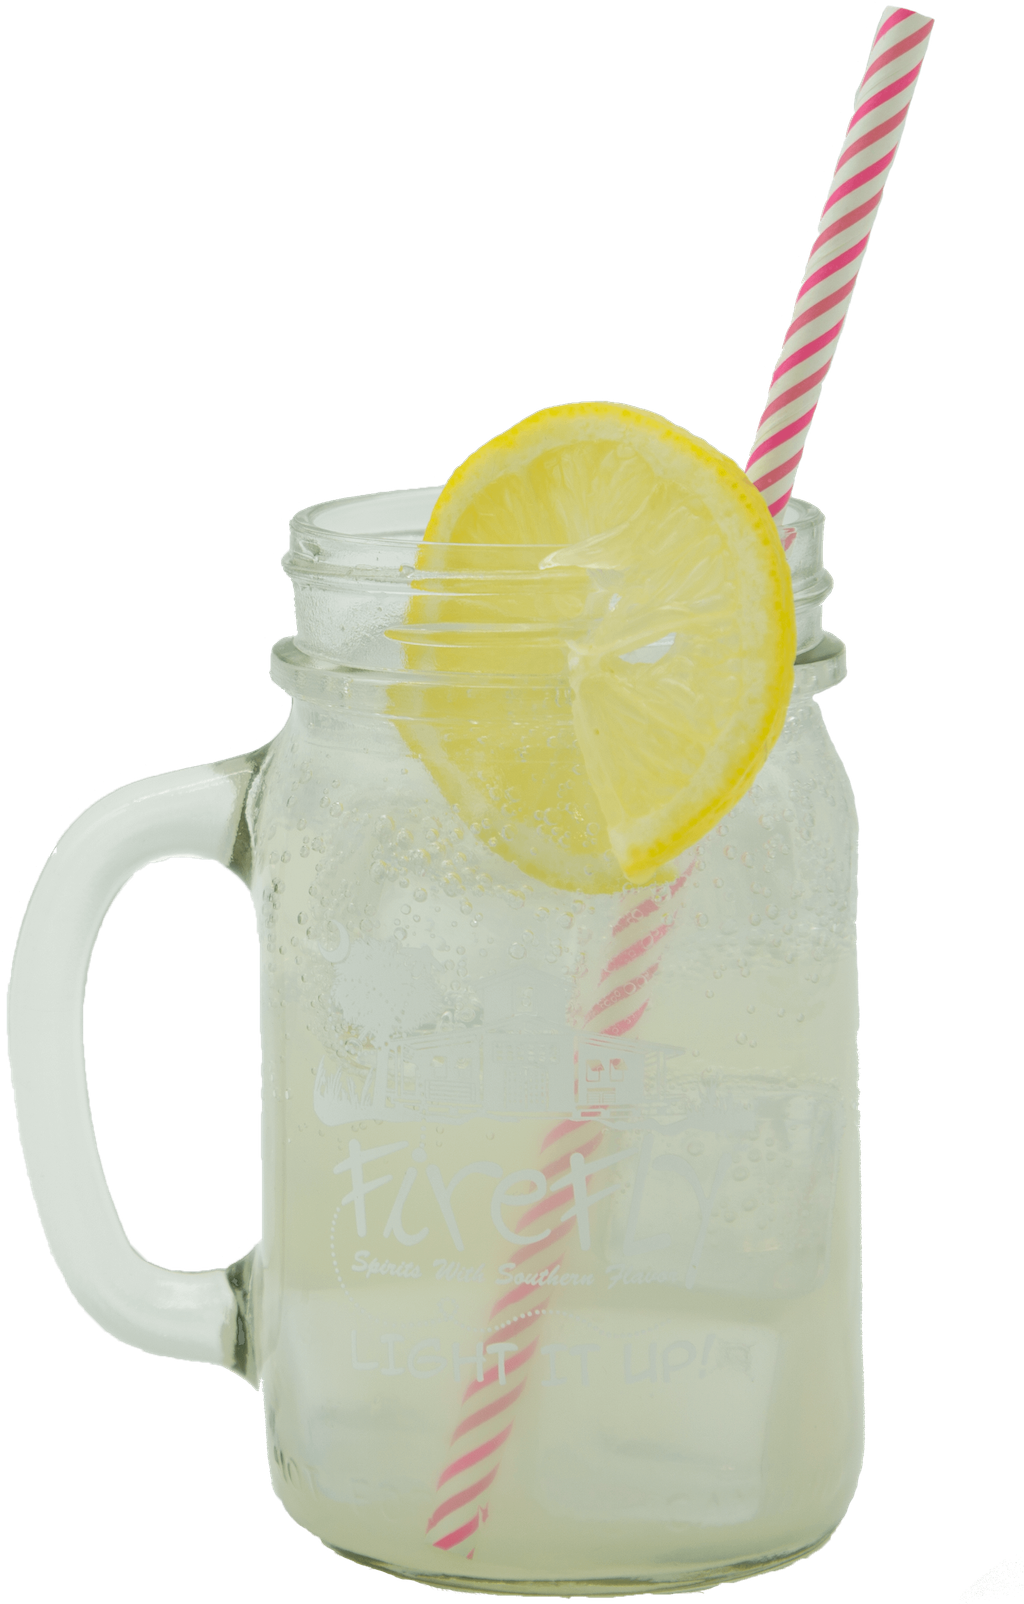 Lemon Fizzy